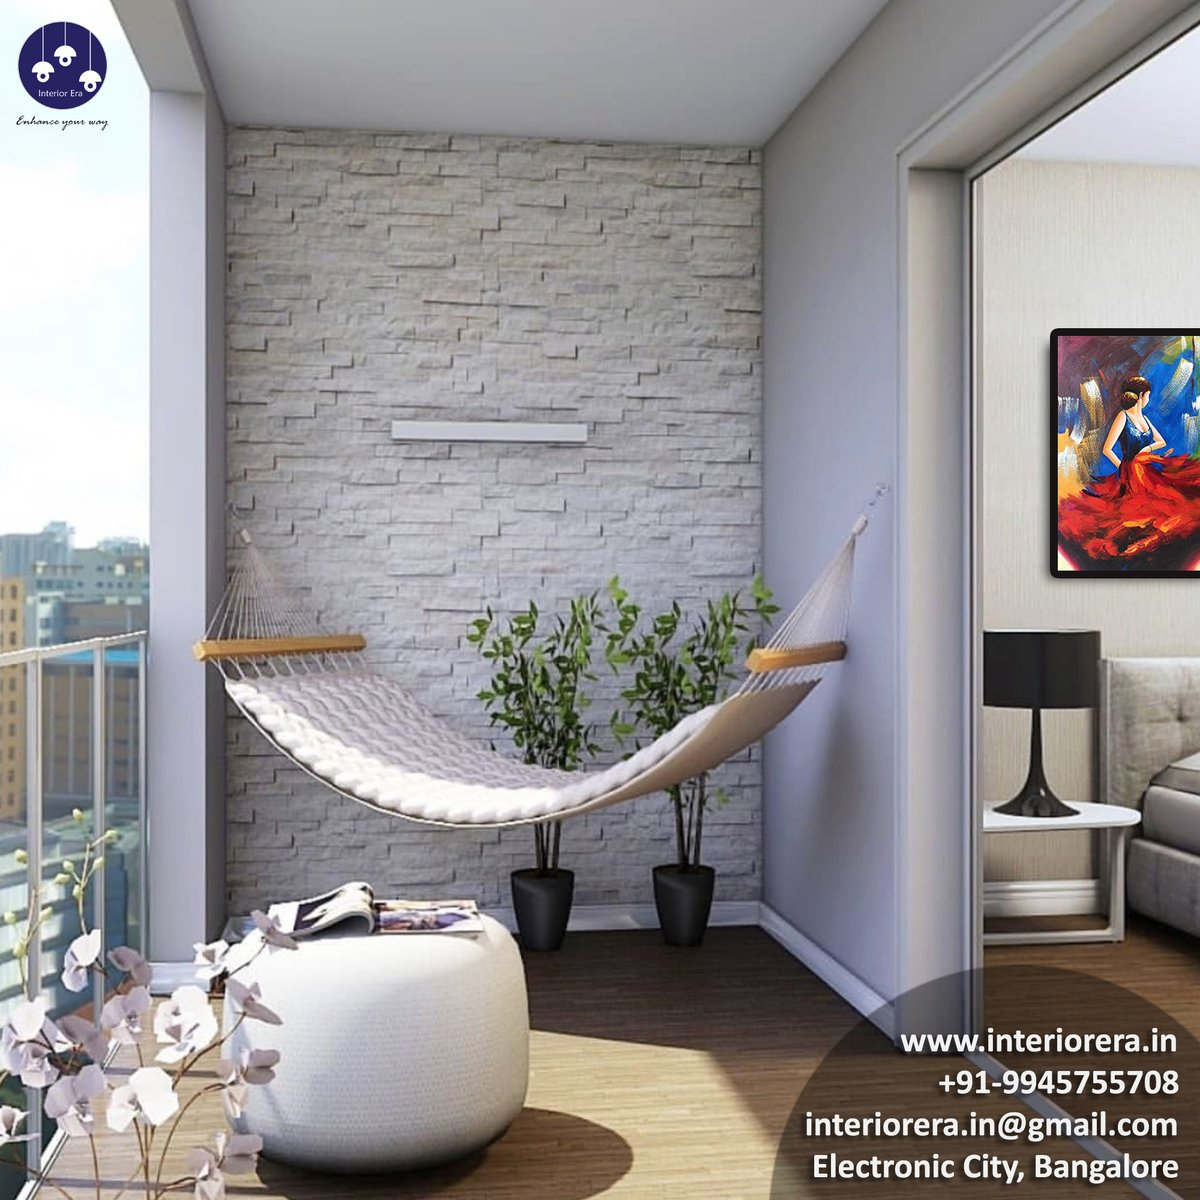 The Balcony Holds a Special Place in our Home, Maybe it is Because this Open Space Connects us to the World...!  #balcony #interiordesign #interior #interiordesigner #interiors #interiordesignideas #interiordecor #Bangalore #bangalorerains #bengalururains #bengaluru https://t.co/jfgnuSZZbe